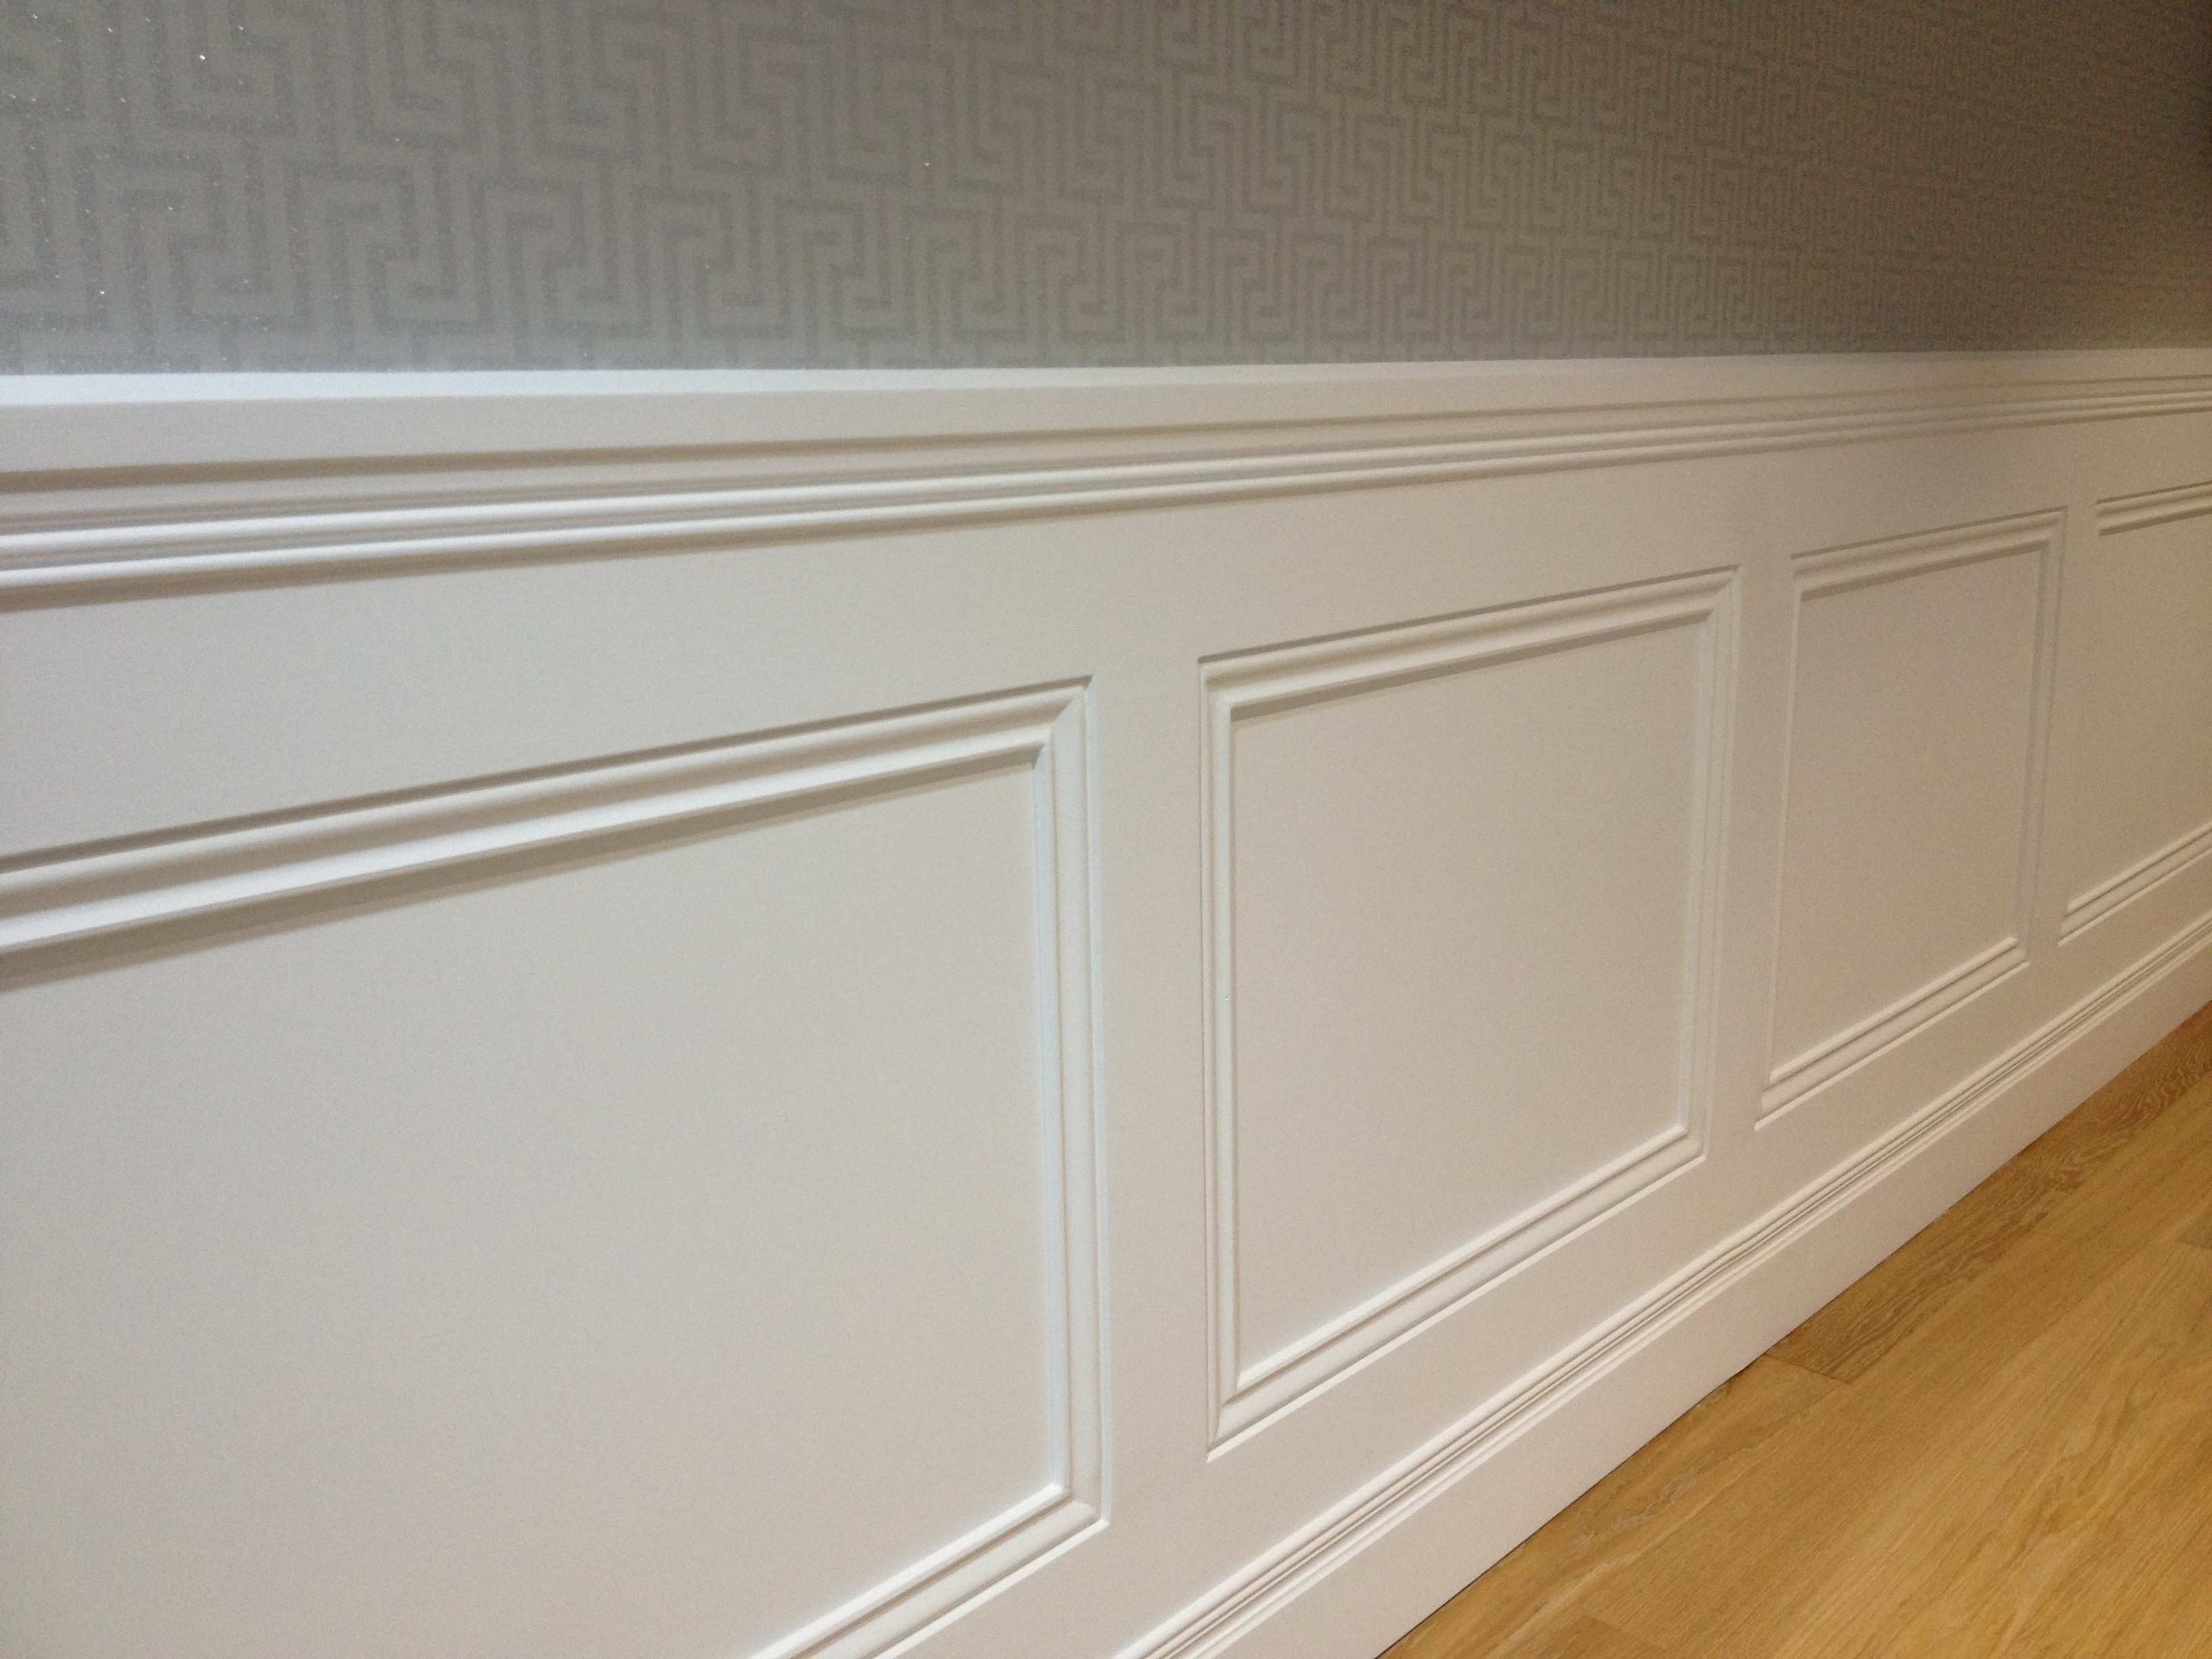 Picture Frame Moulding On Walls Elegant Decorative Plaster Mouldings ...